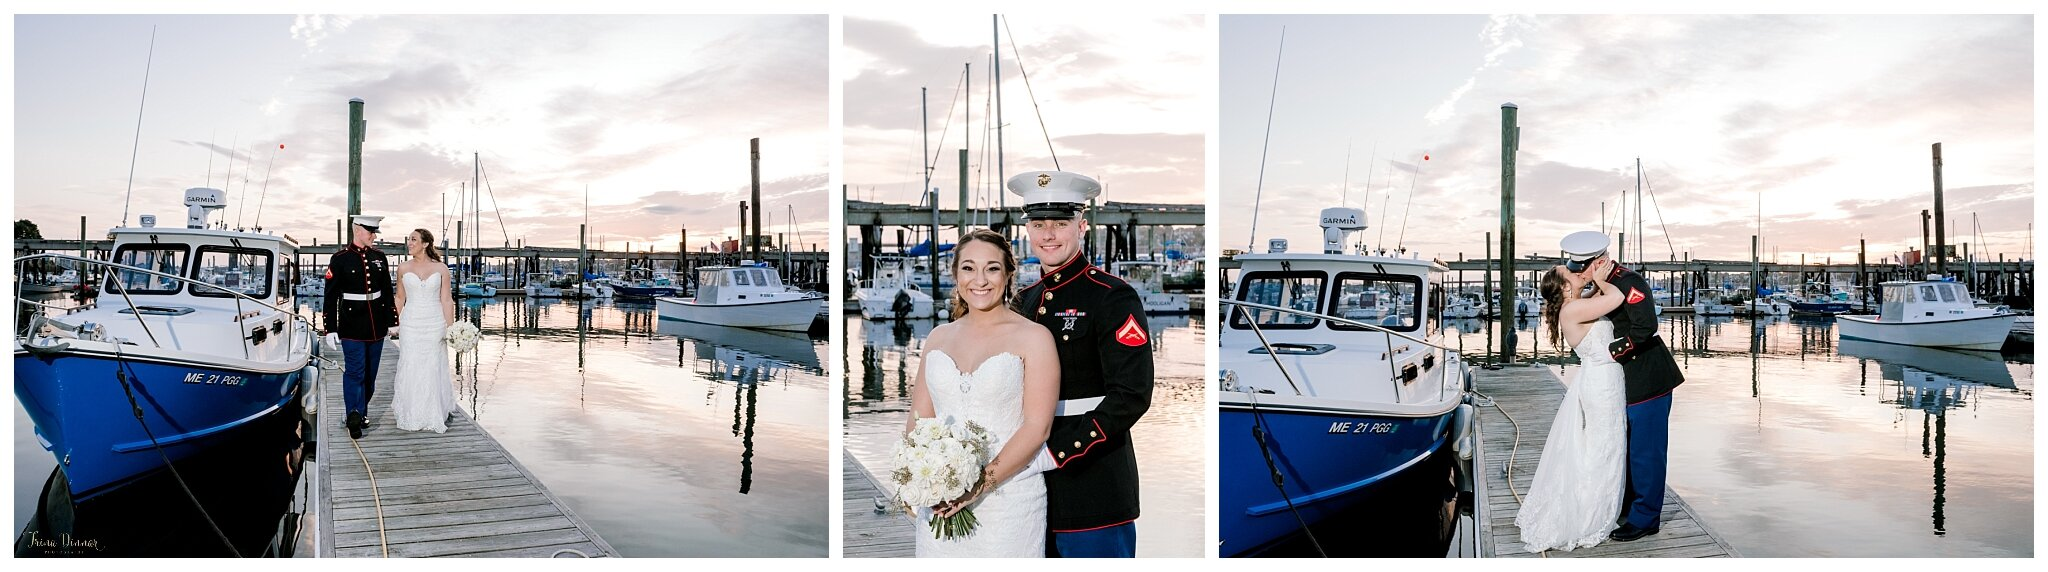 Portland Harbor Wedding Sunset Photography at Saltwater Grille